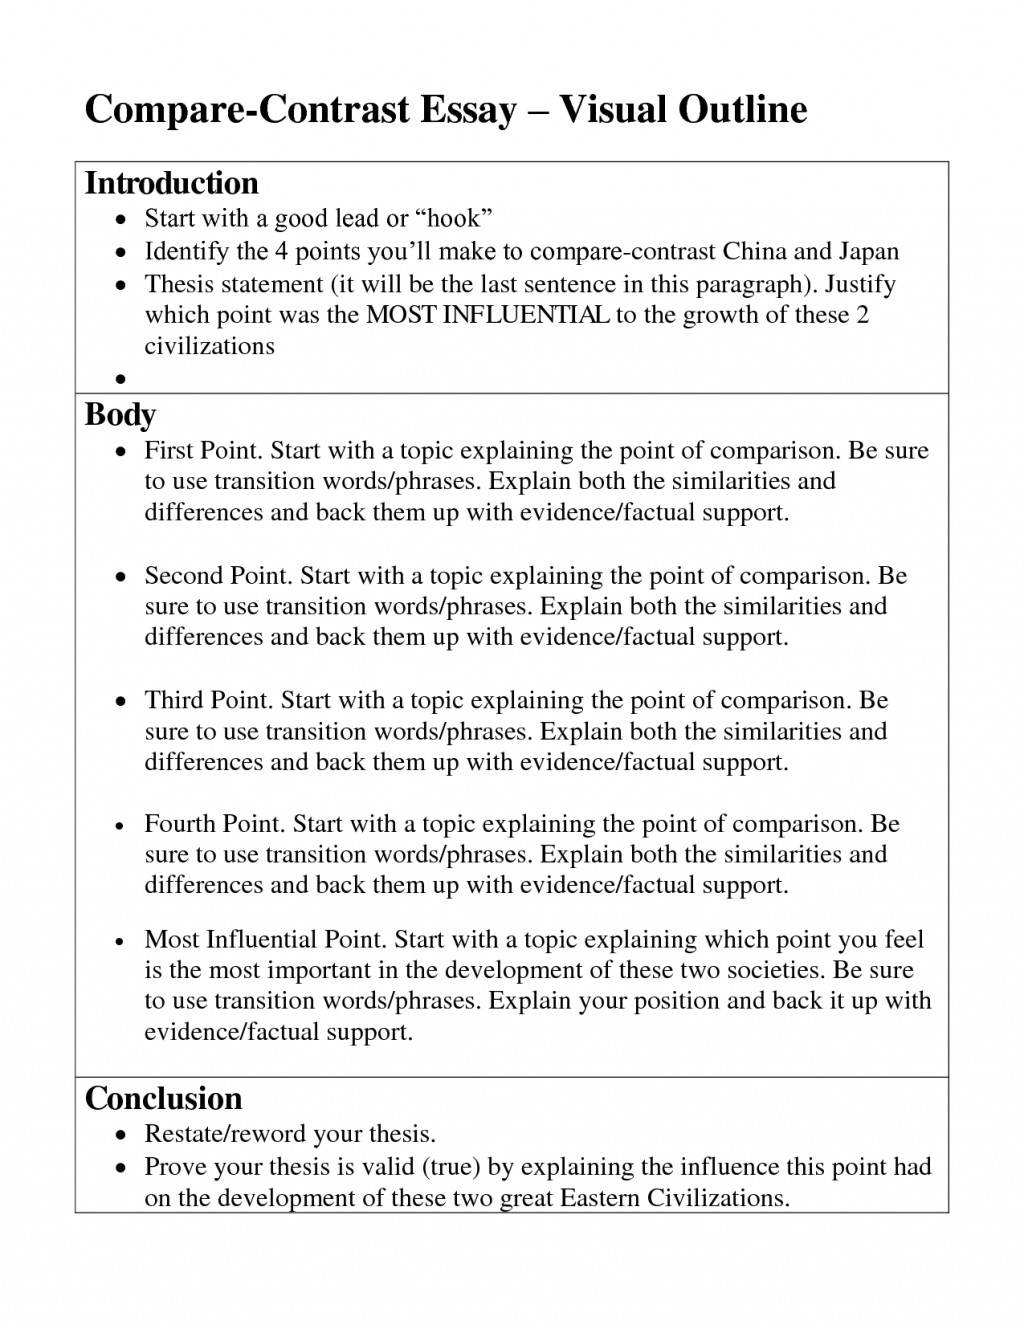 011 What Is Compare And Contrast Essay Zvnu5gm74k Striking A Does Comparison/contrast Look Like Should Provide Good Topic Sentence For Large